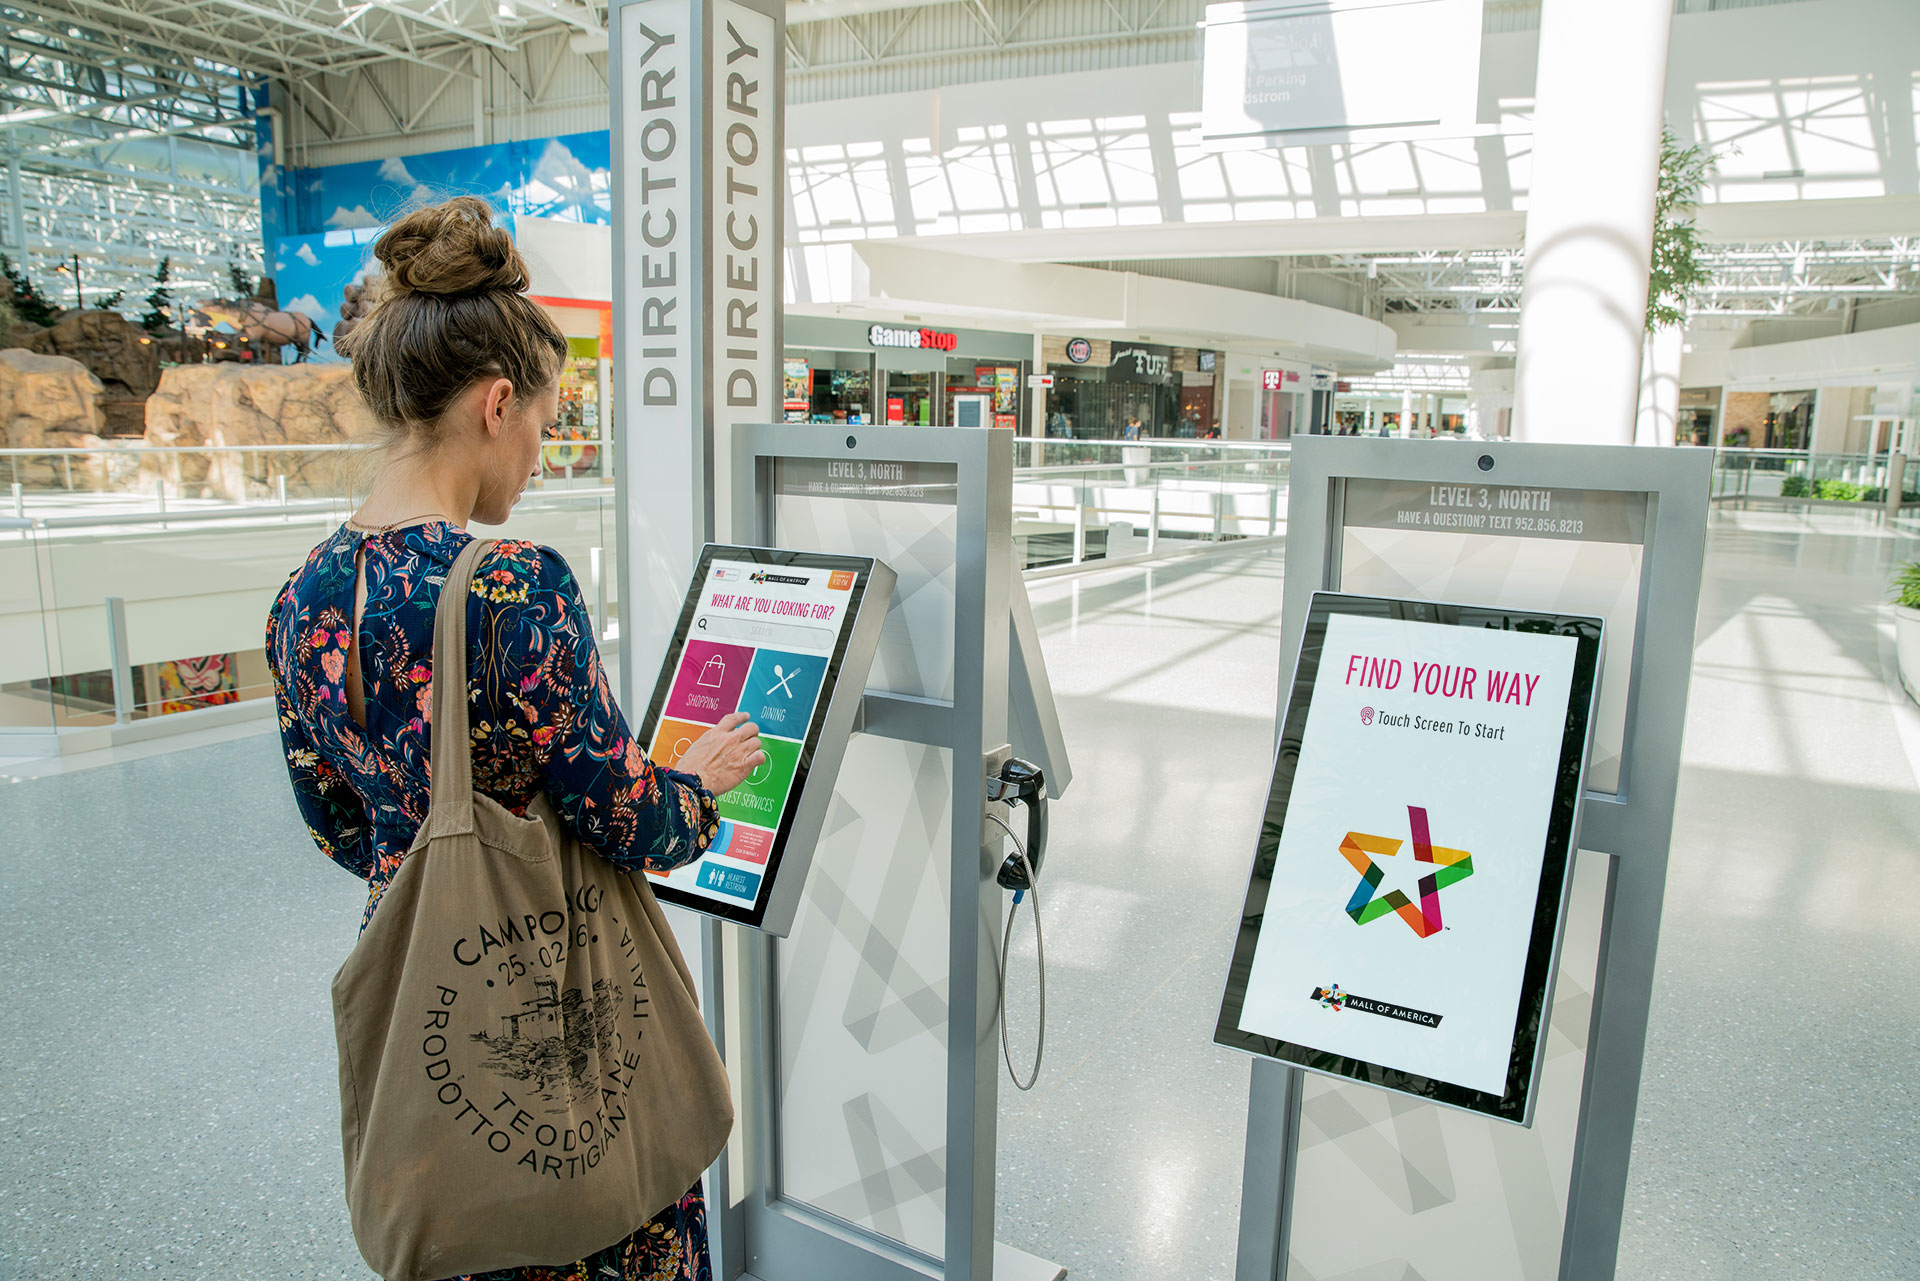 EXPRESS IMAGE EXPANDS FROM 6 TO NEARLY 100 DIGITAL DIRECTORIES AT MALL OF AMERICA®